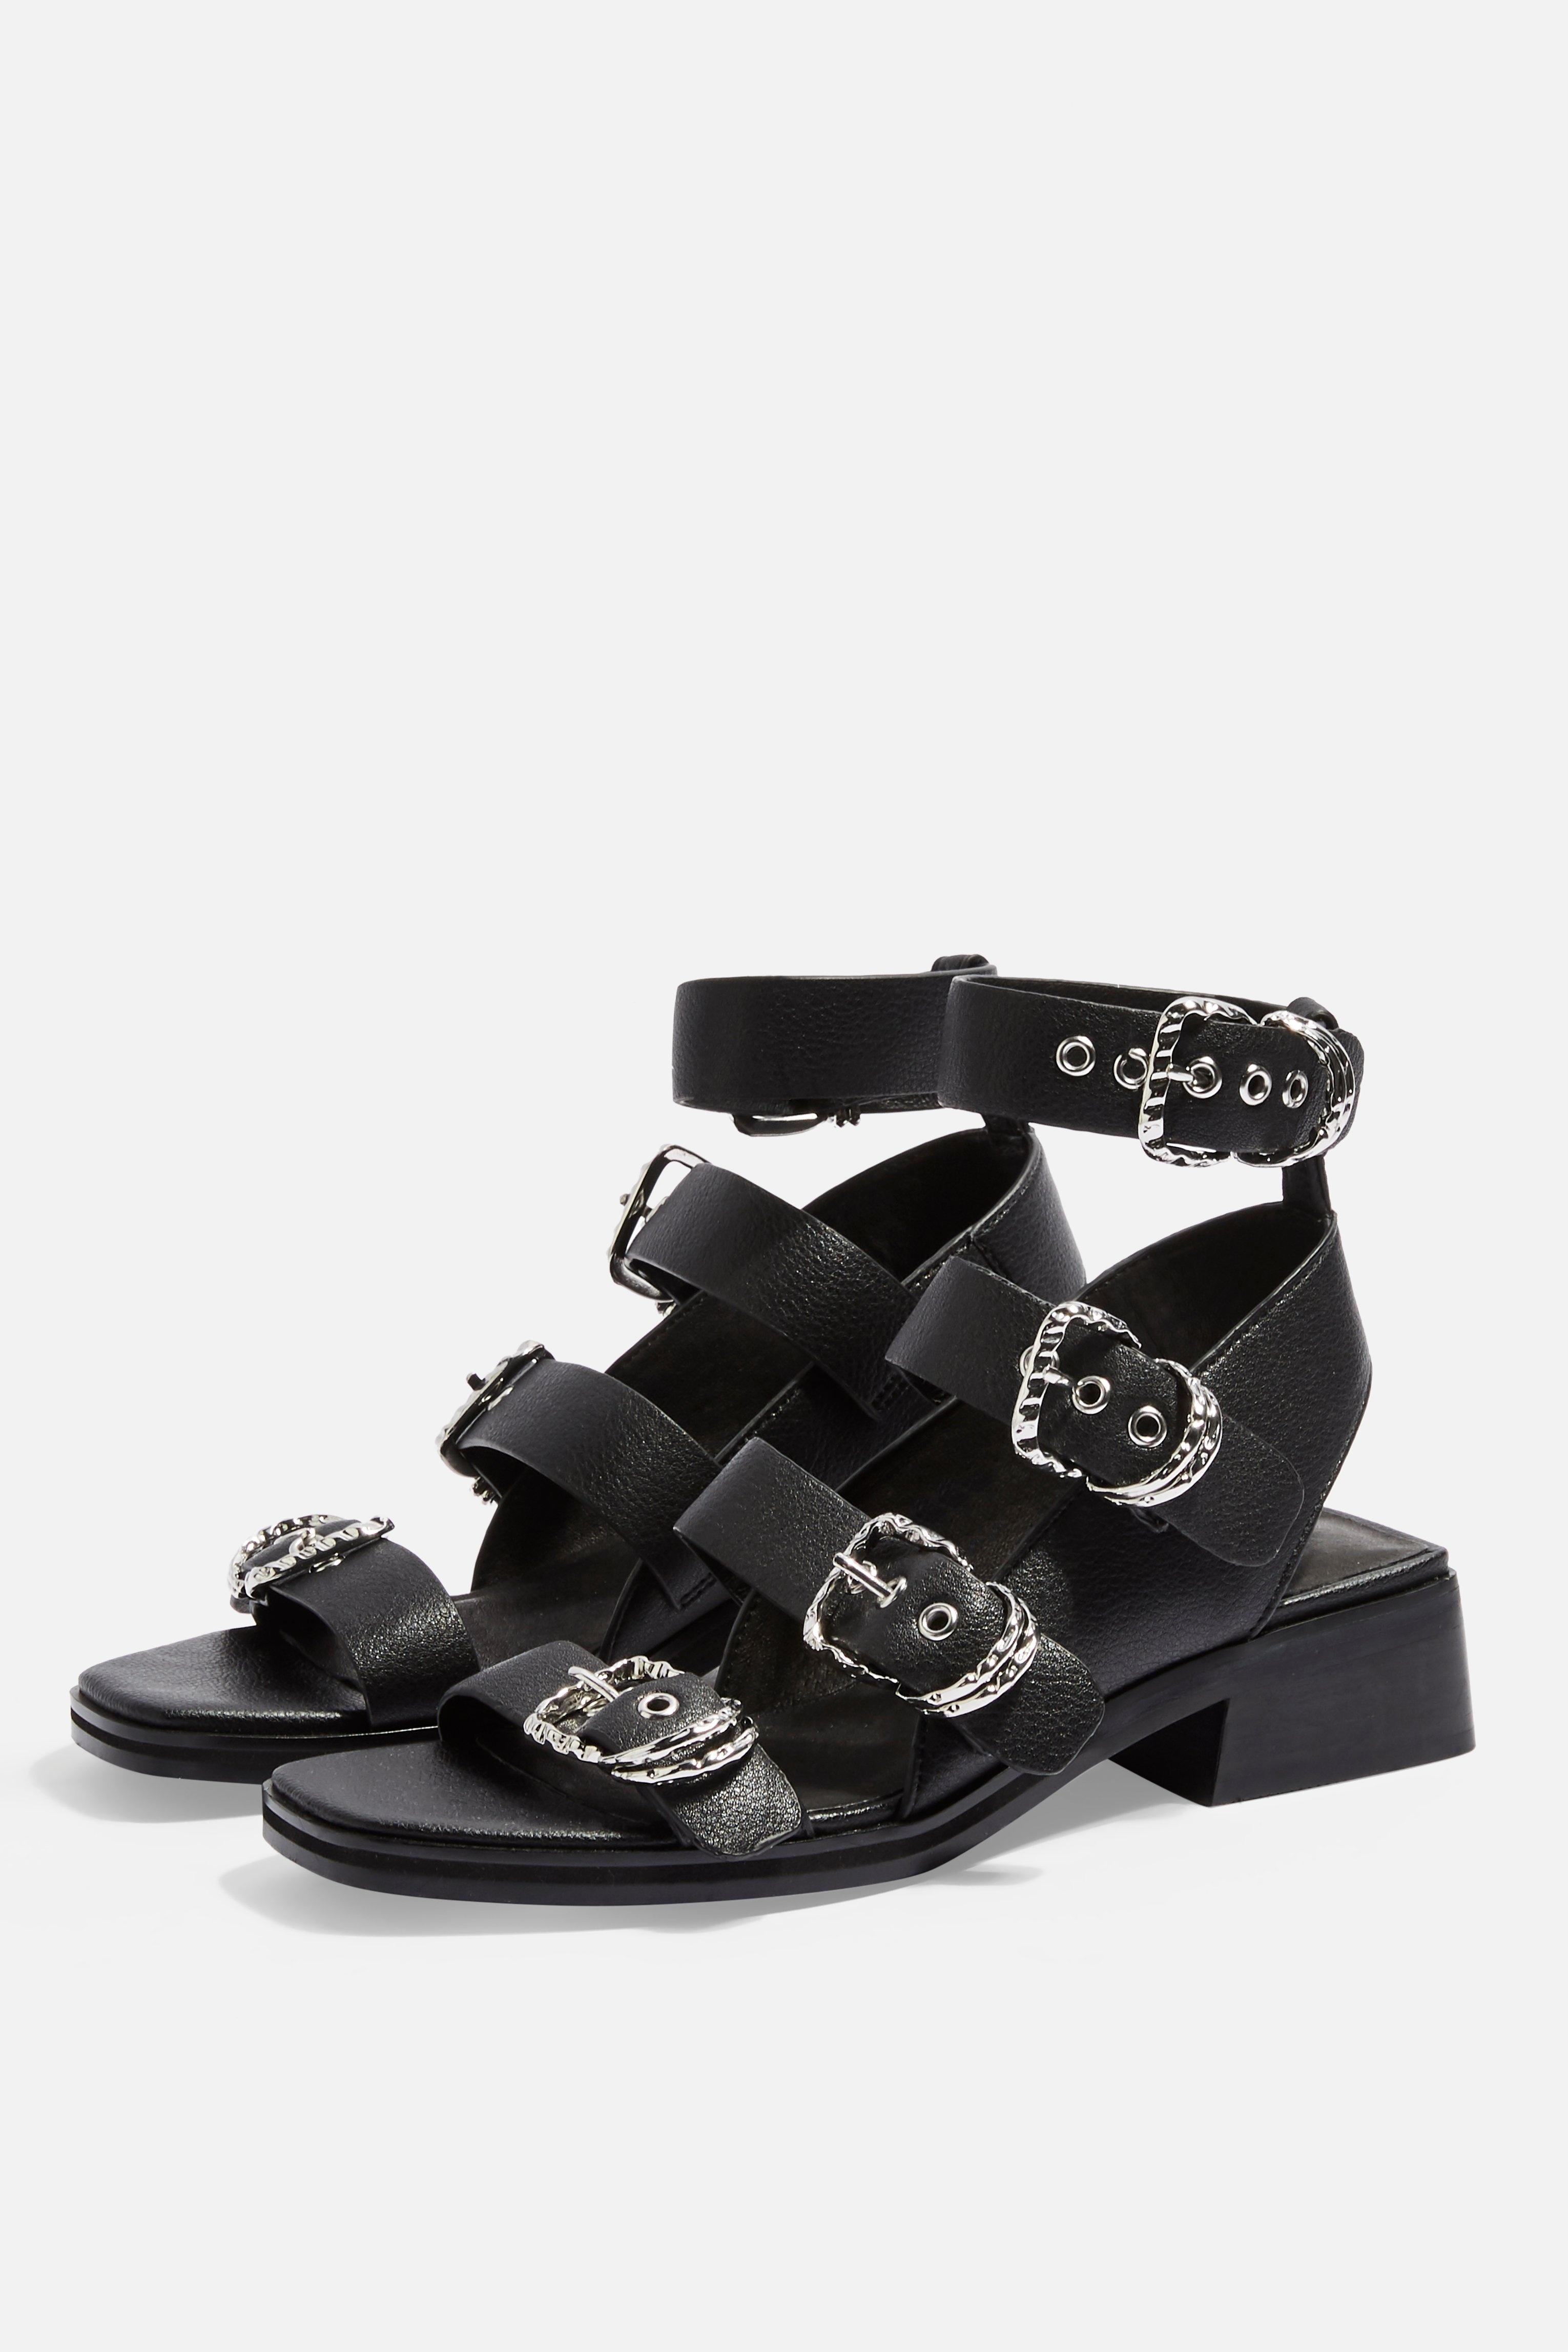 47f9605d0 Lyst - TOPSHOP Victory Black Leather Buckle Sandals in Black